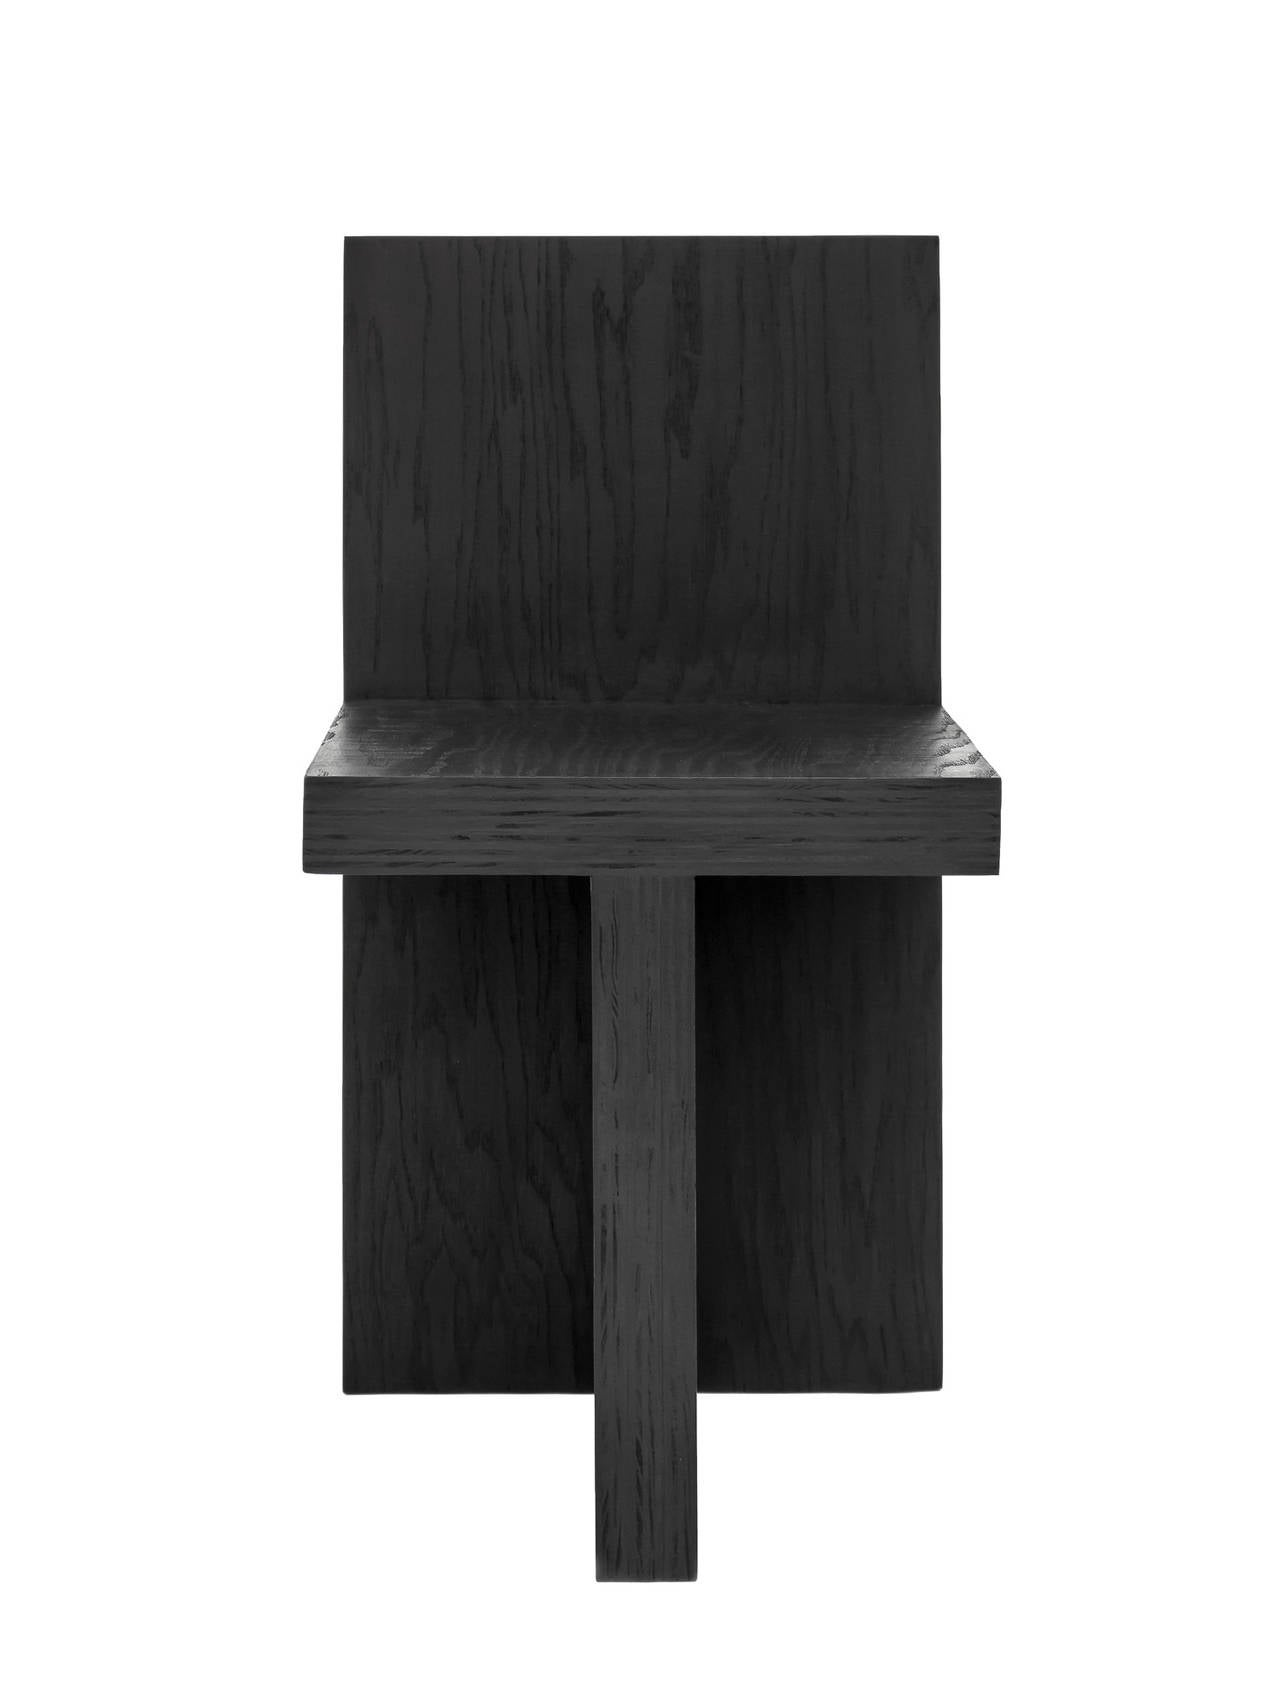 'Monument  IV' Plywood Chair in Black by Lukas Machnik available from LMD/studio.   A few months prior to shooting NBC's American Dream Builders, Lukas Machnik launched MONUMENT, a collection of minimal hardwood furniture composed of intersecting